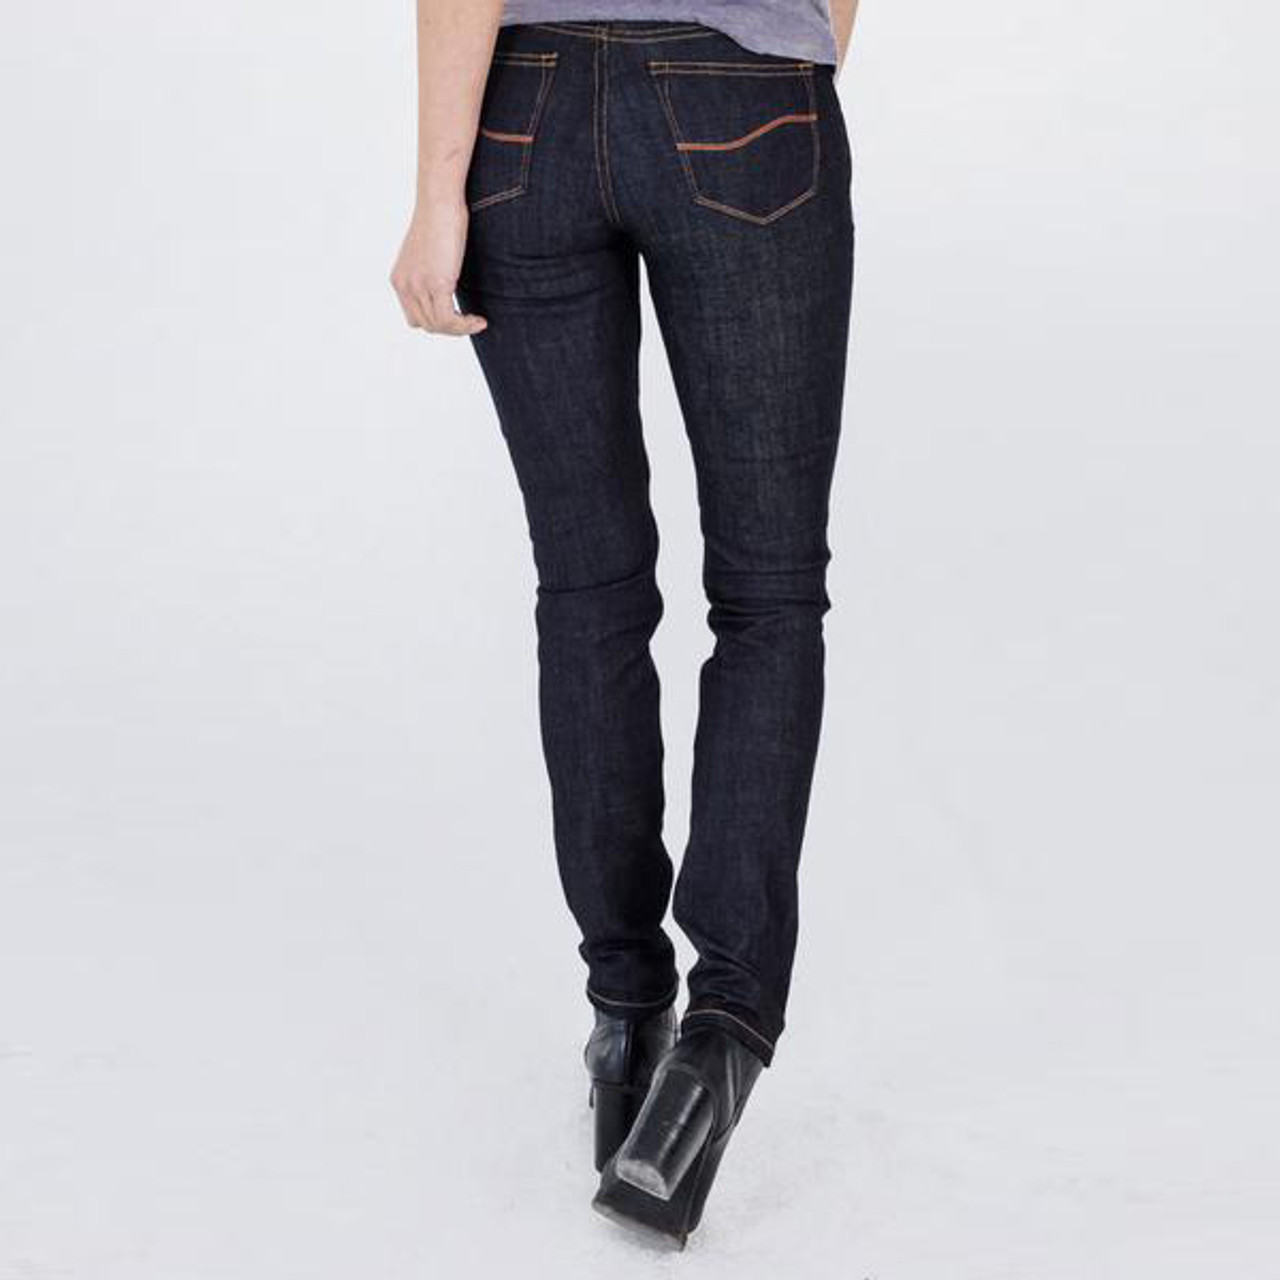 reputable site 2da43 f888b Women's Indigo Riding Jeans - Kevlar Lined